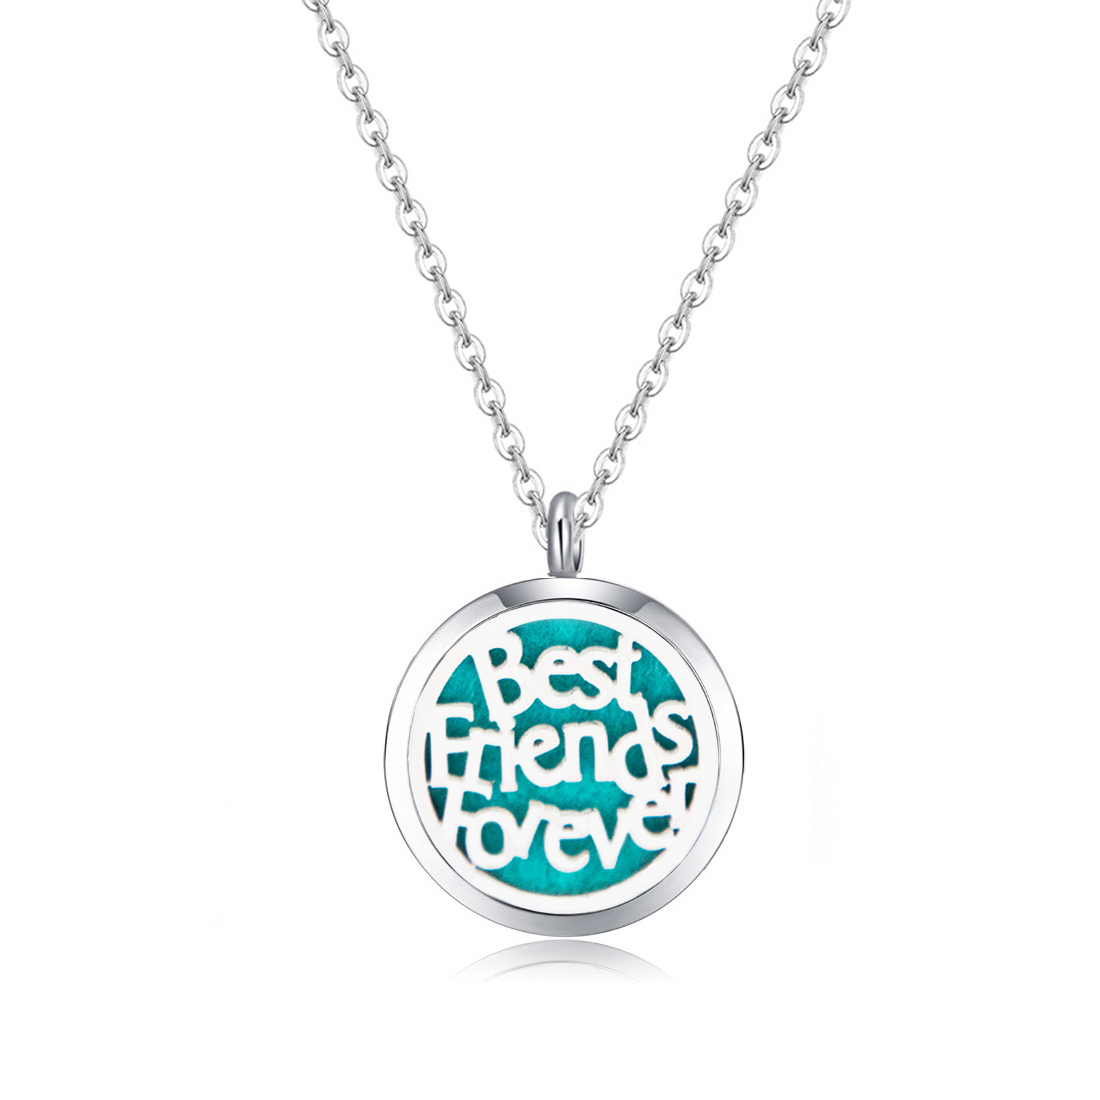 10pcs mesinya Best Friends Forever (30mm) Aromatherapy / Essential Oil surgical Stainless Steel Diffuser Locket Necklace